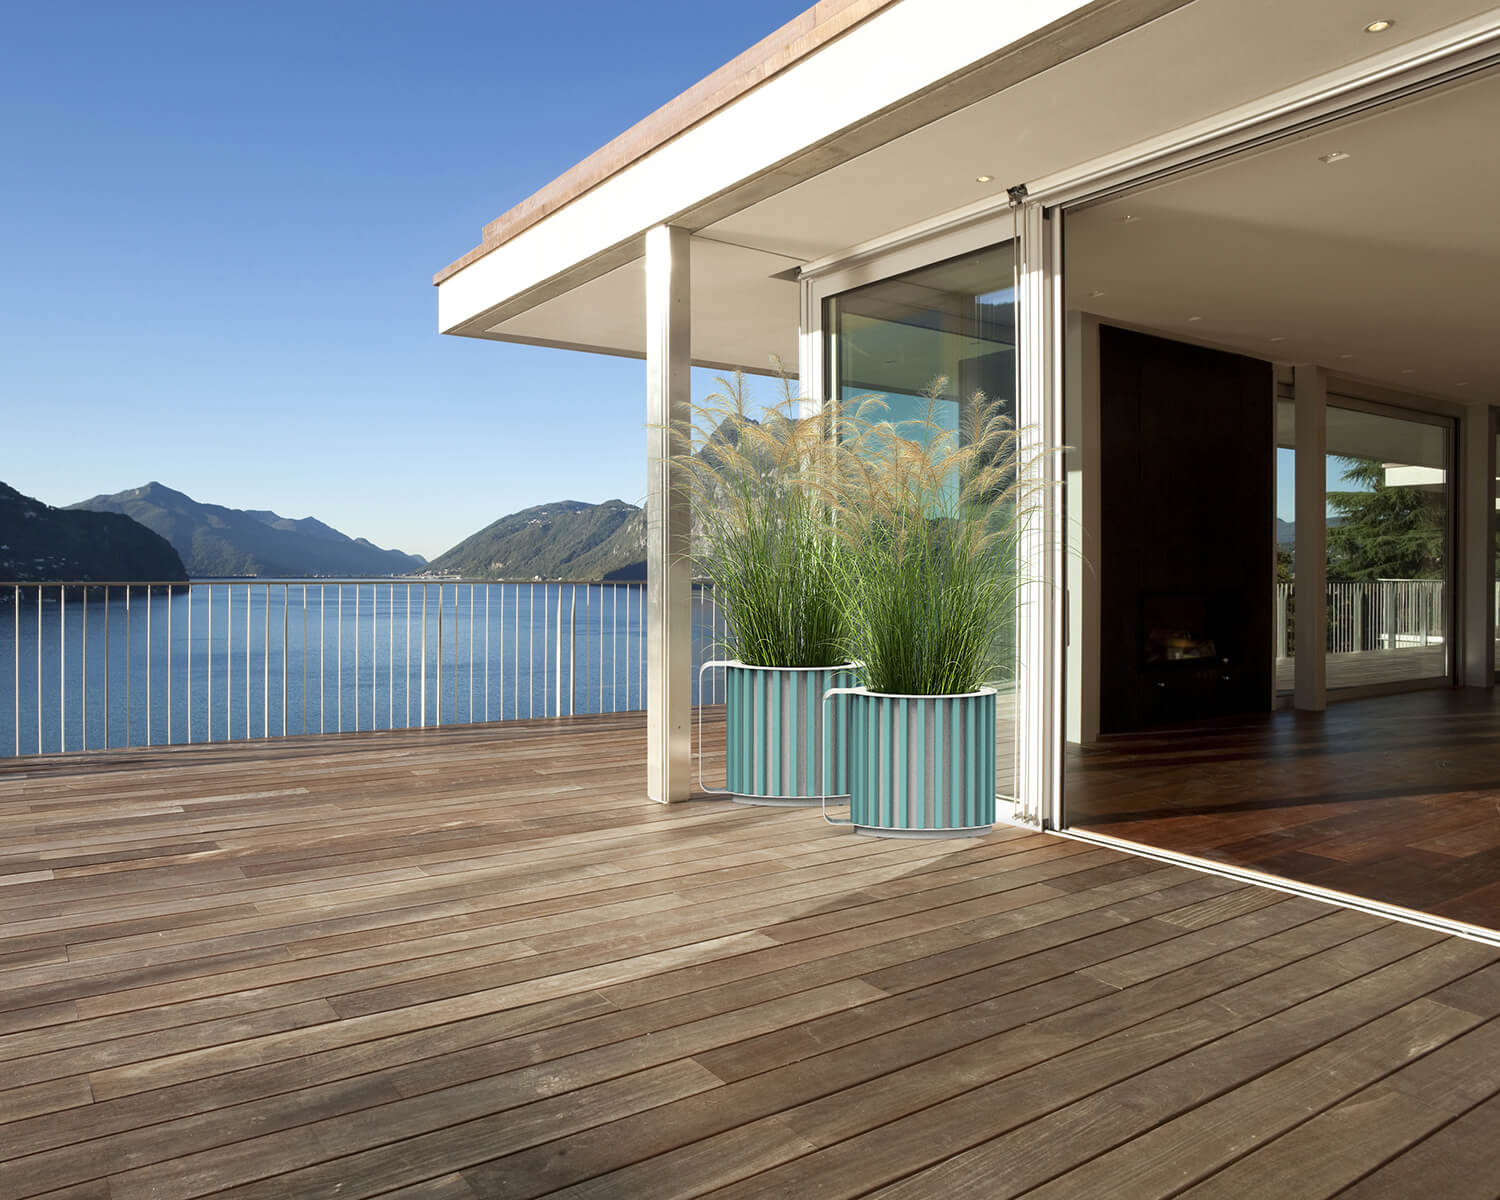 Teal Mug planters on a wooden deck overlooking the water and mountains